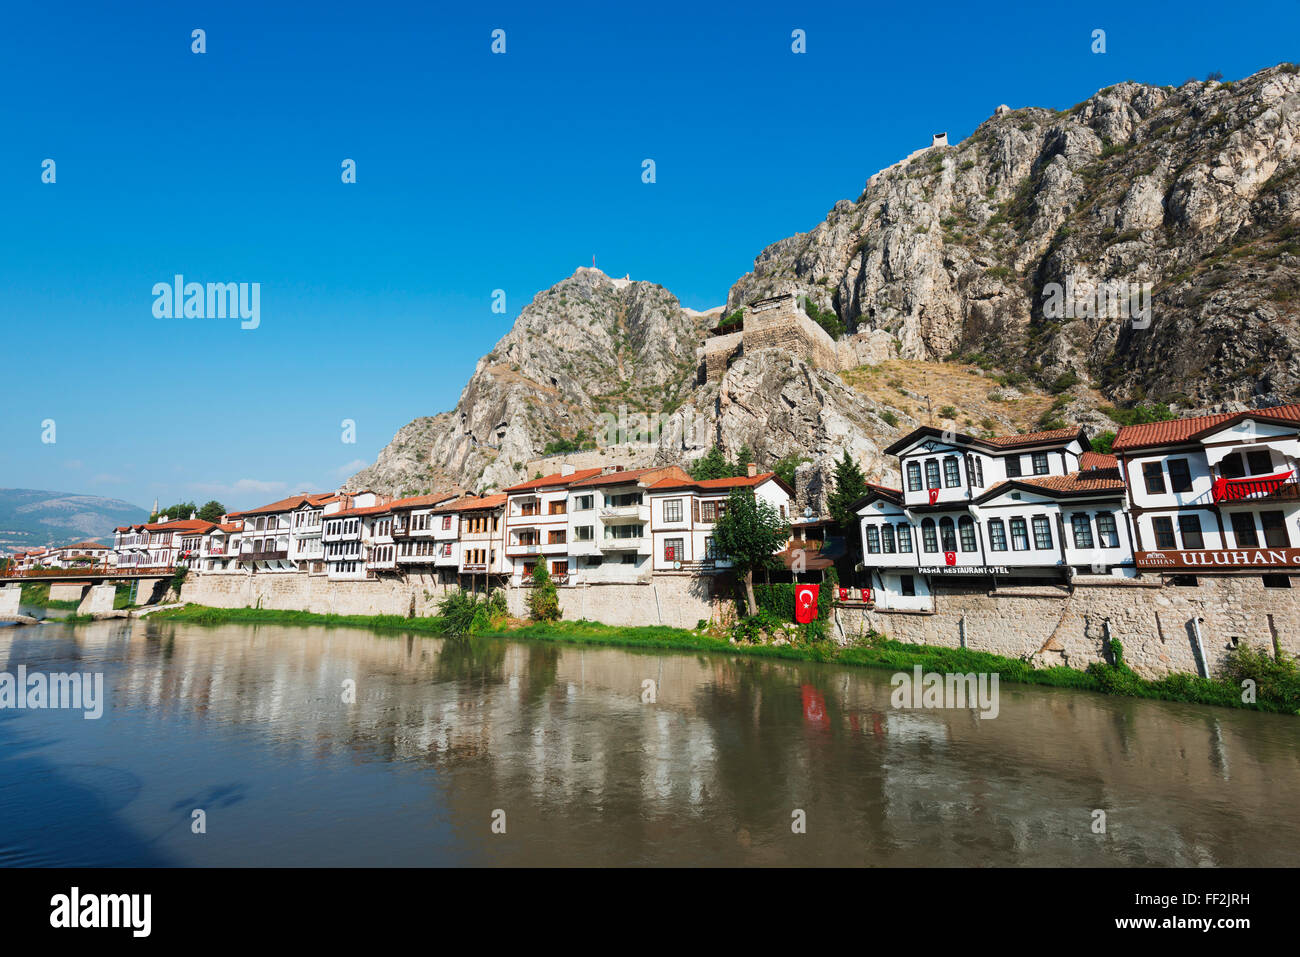 Hatuniye MahaRMRMesi historic neighbourhood beRMow Harsena CastRMe, Amasya, CentraRM AnatoRMia, Turkey, Asia Minor, - Stock Image